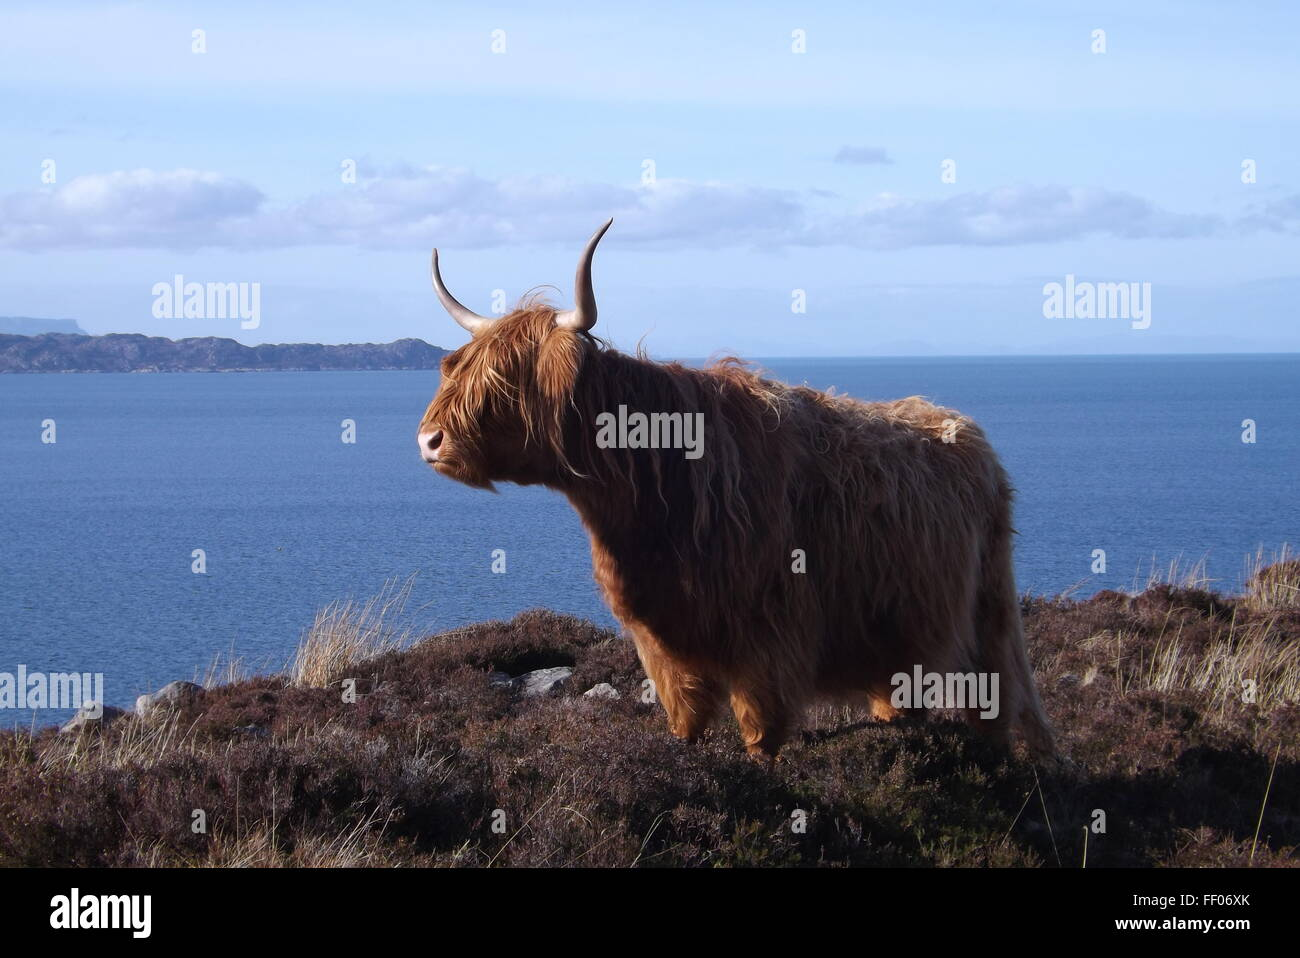 A Highland Cow near Applecross In the Highlands of Scotland. - Stock Image